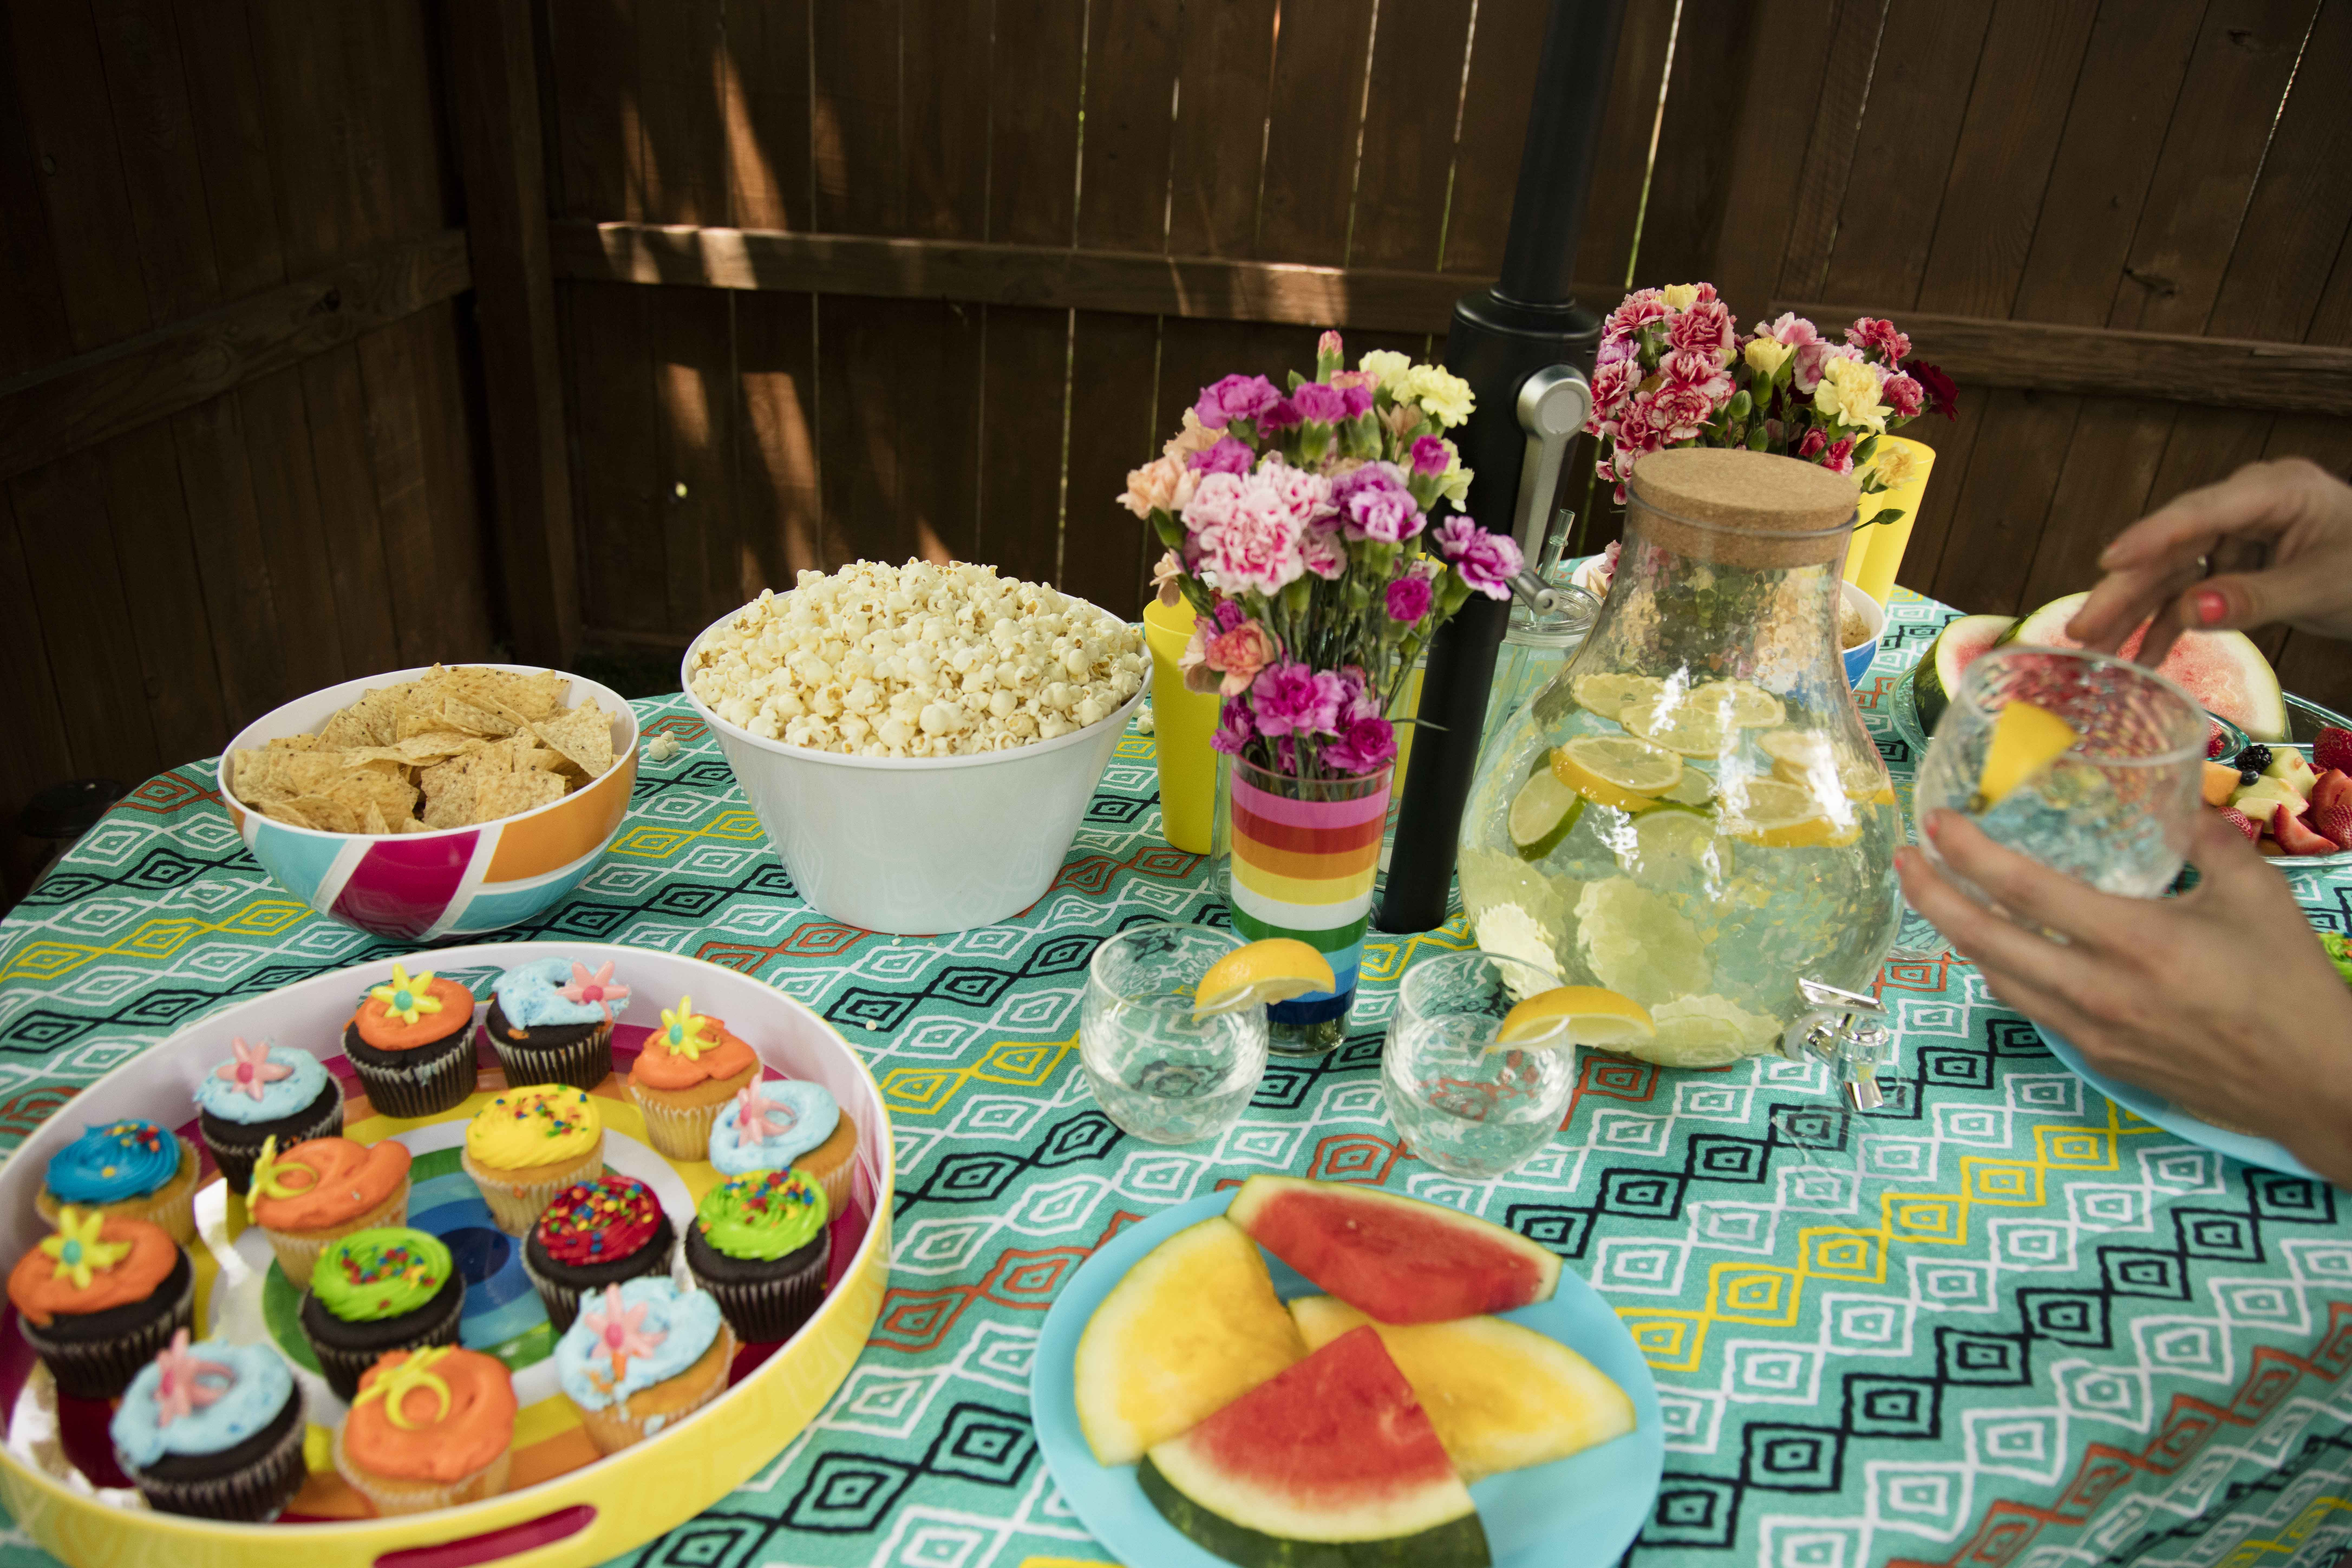 Picnic in your backyard